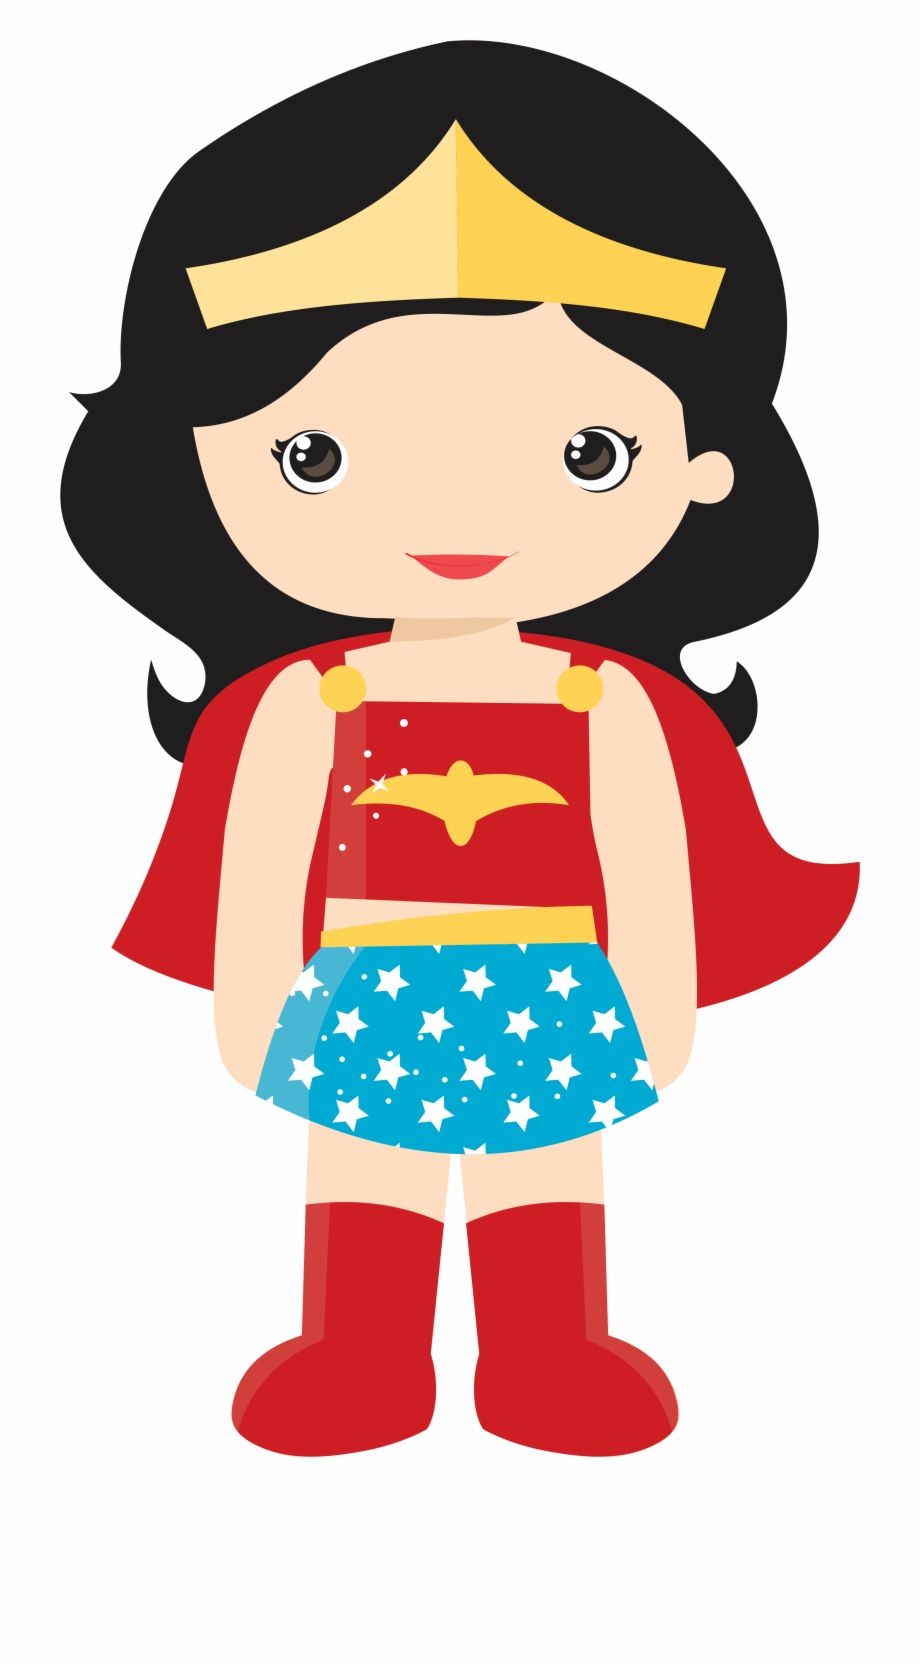 This is an image of Handy Cute Wonder Woman